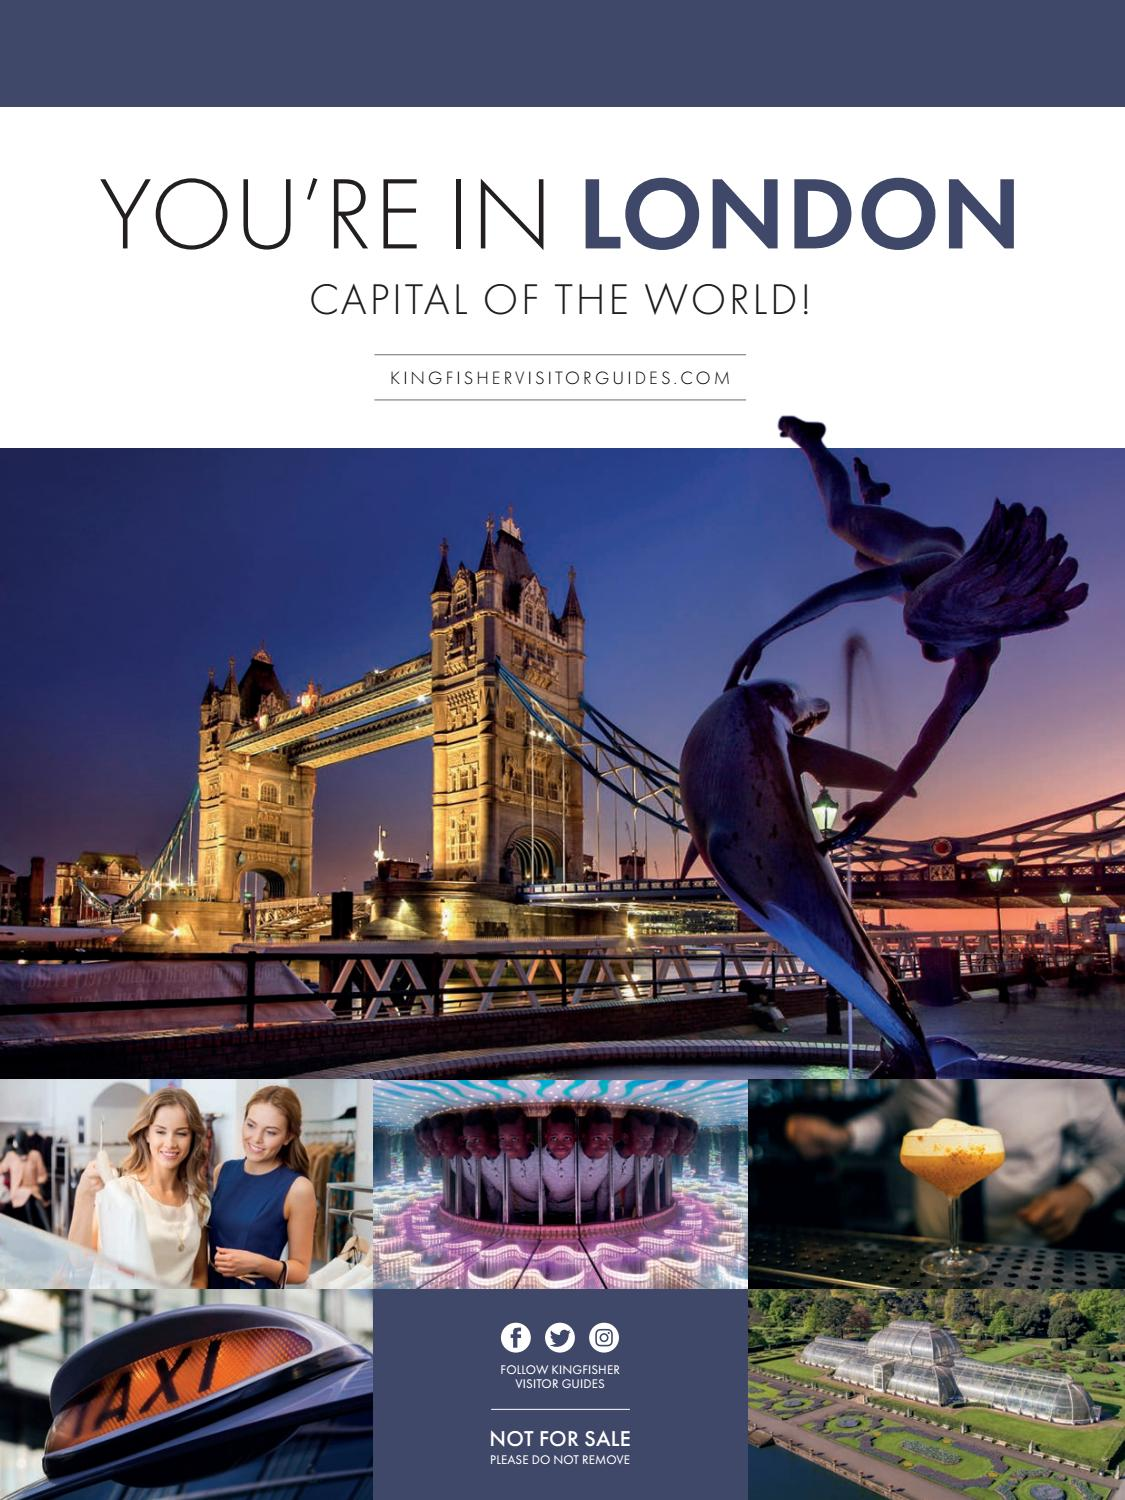 064ed3486 You re in London – Capital of the World! by Kingfisher Visitor Guides -  issuu